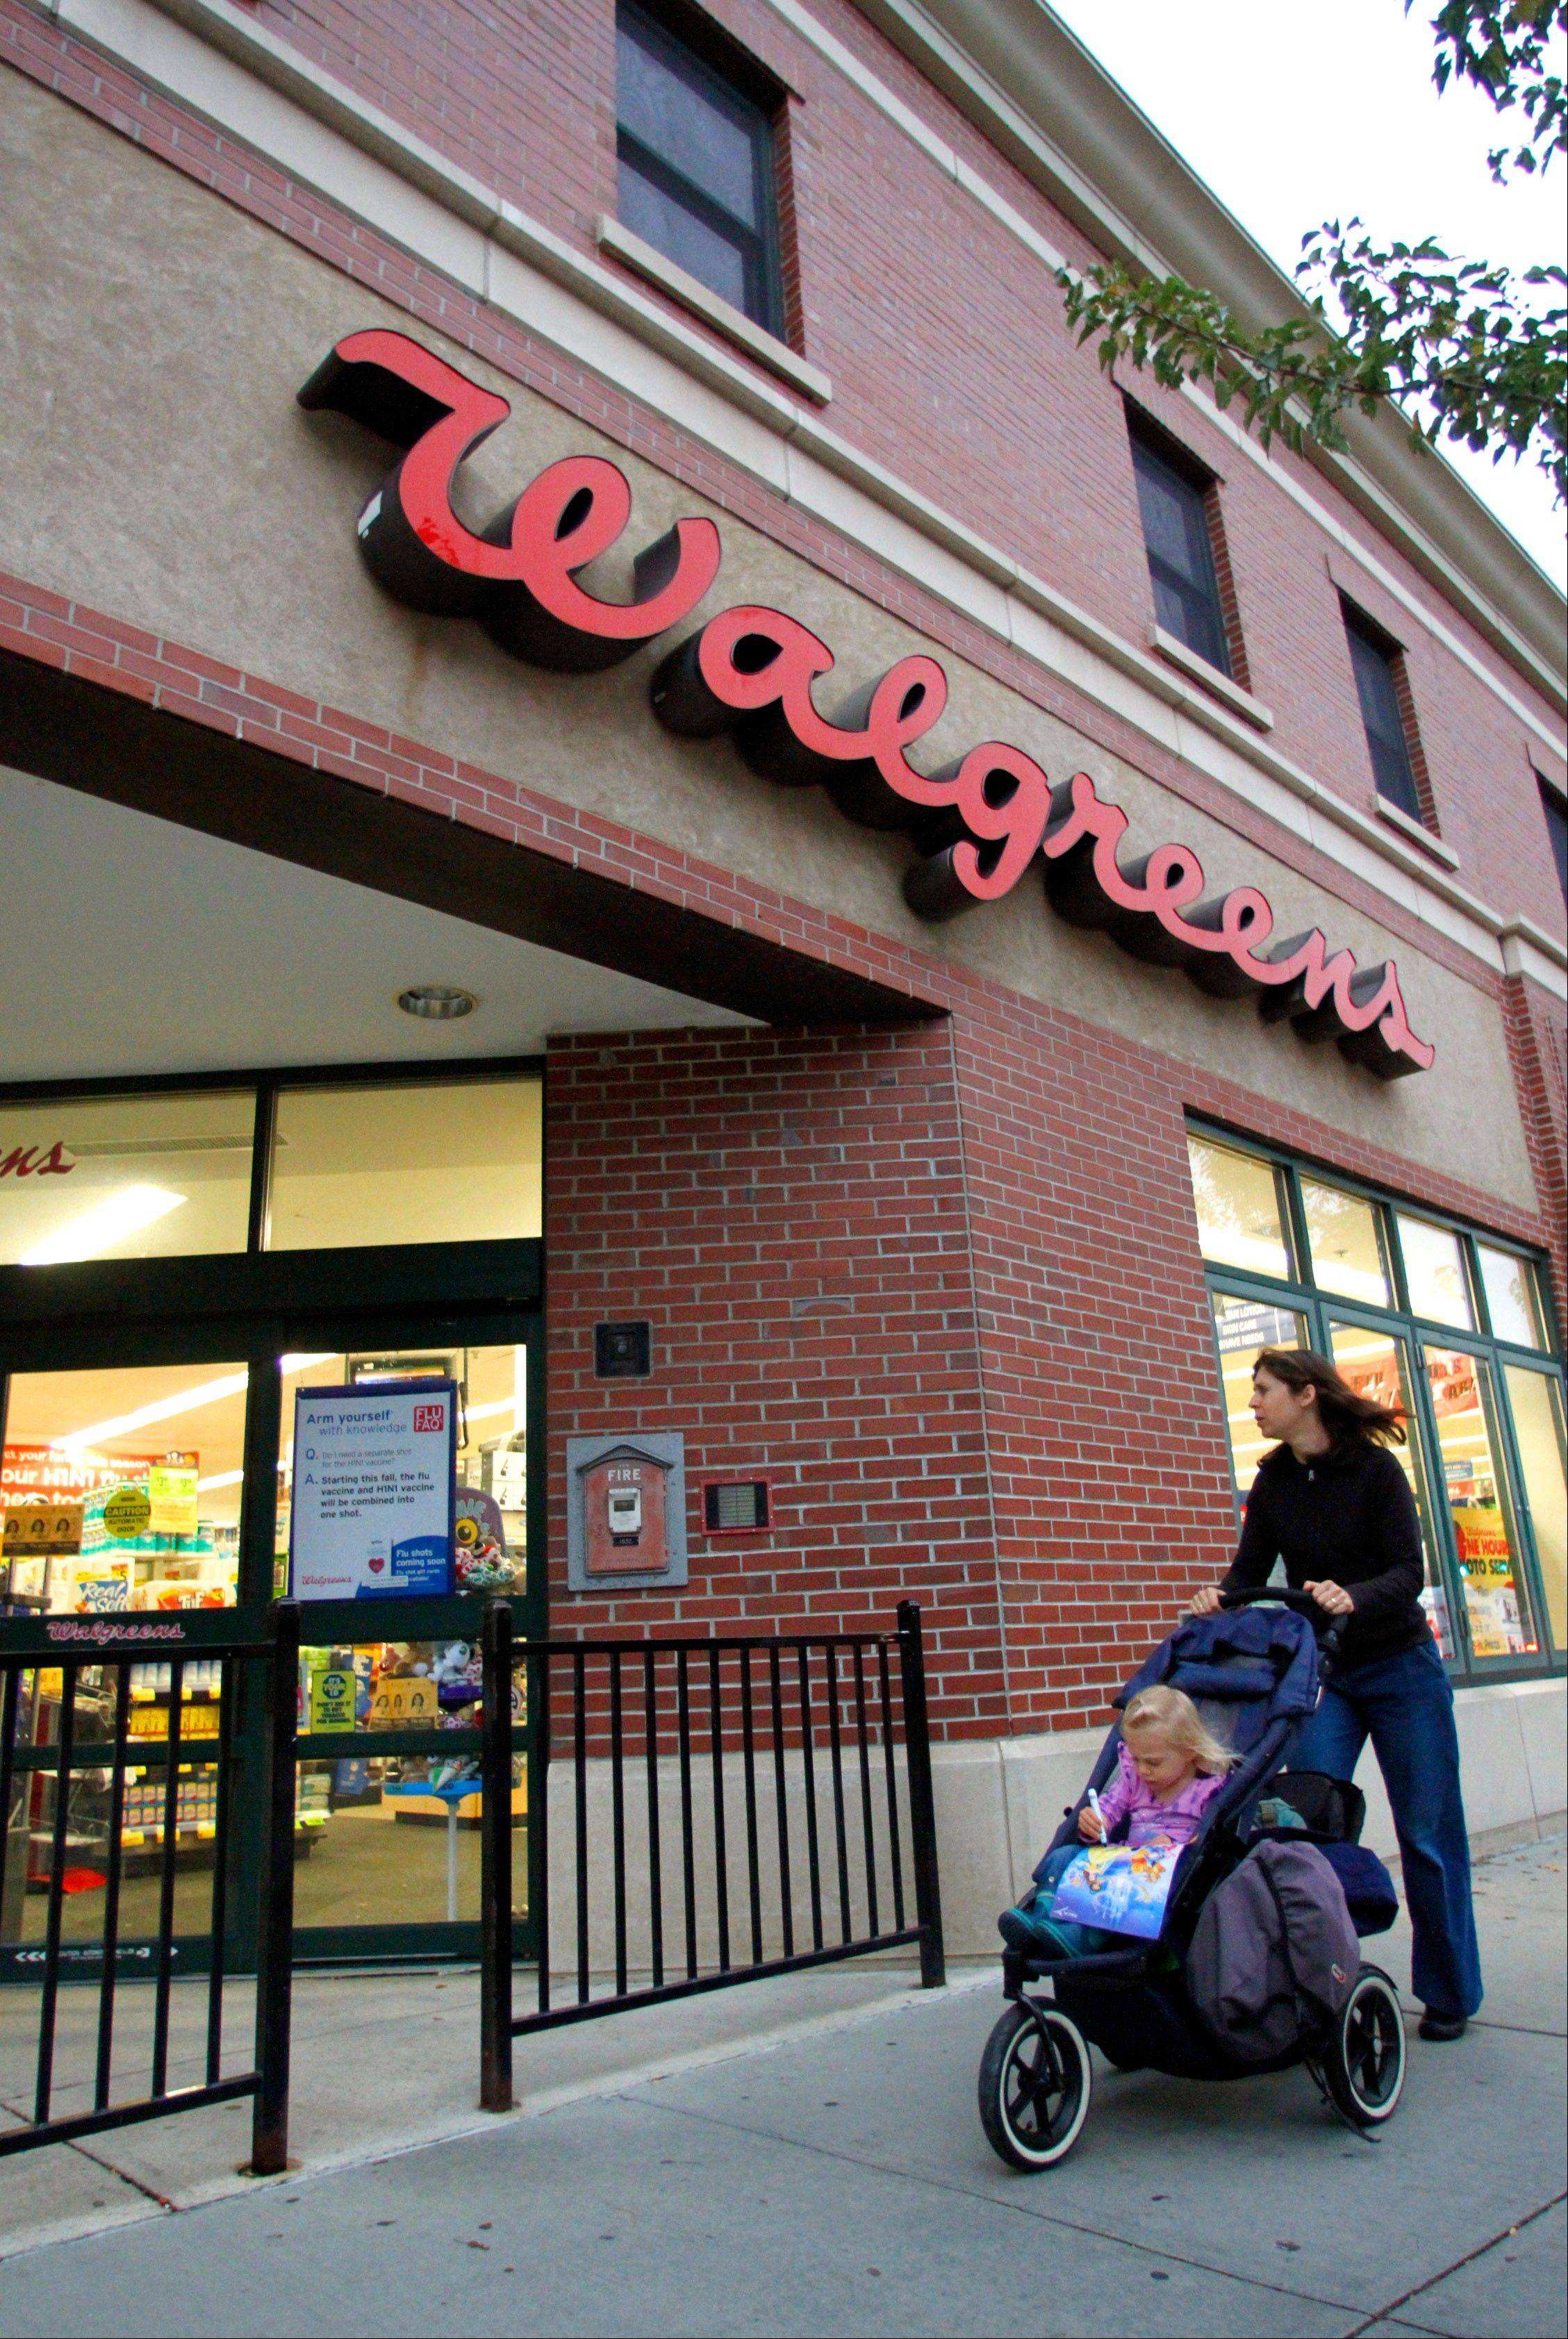 A passer-by pushes a baby carriage past the entrance of a Walgreens pharmacy.